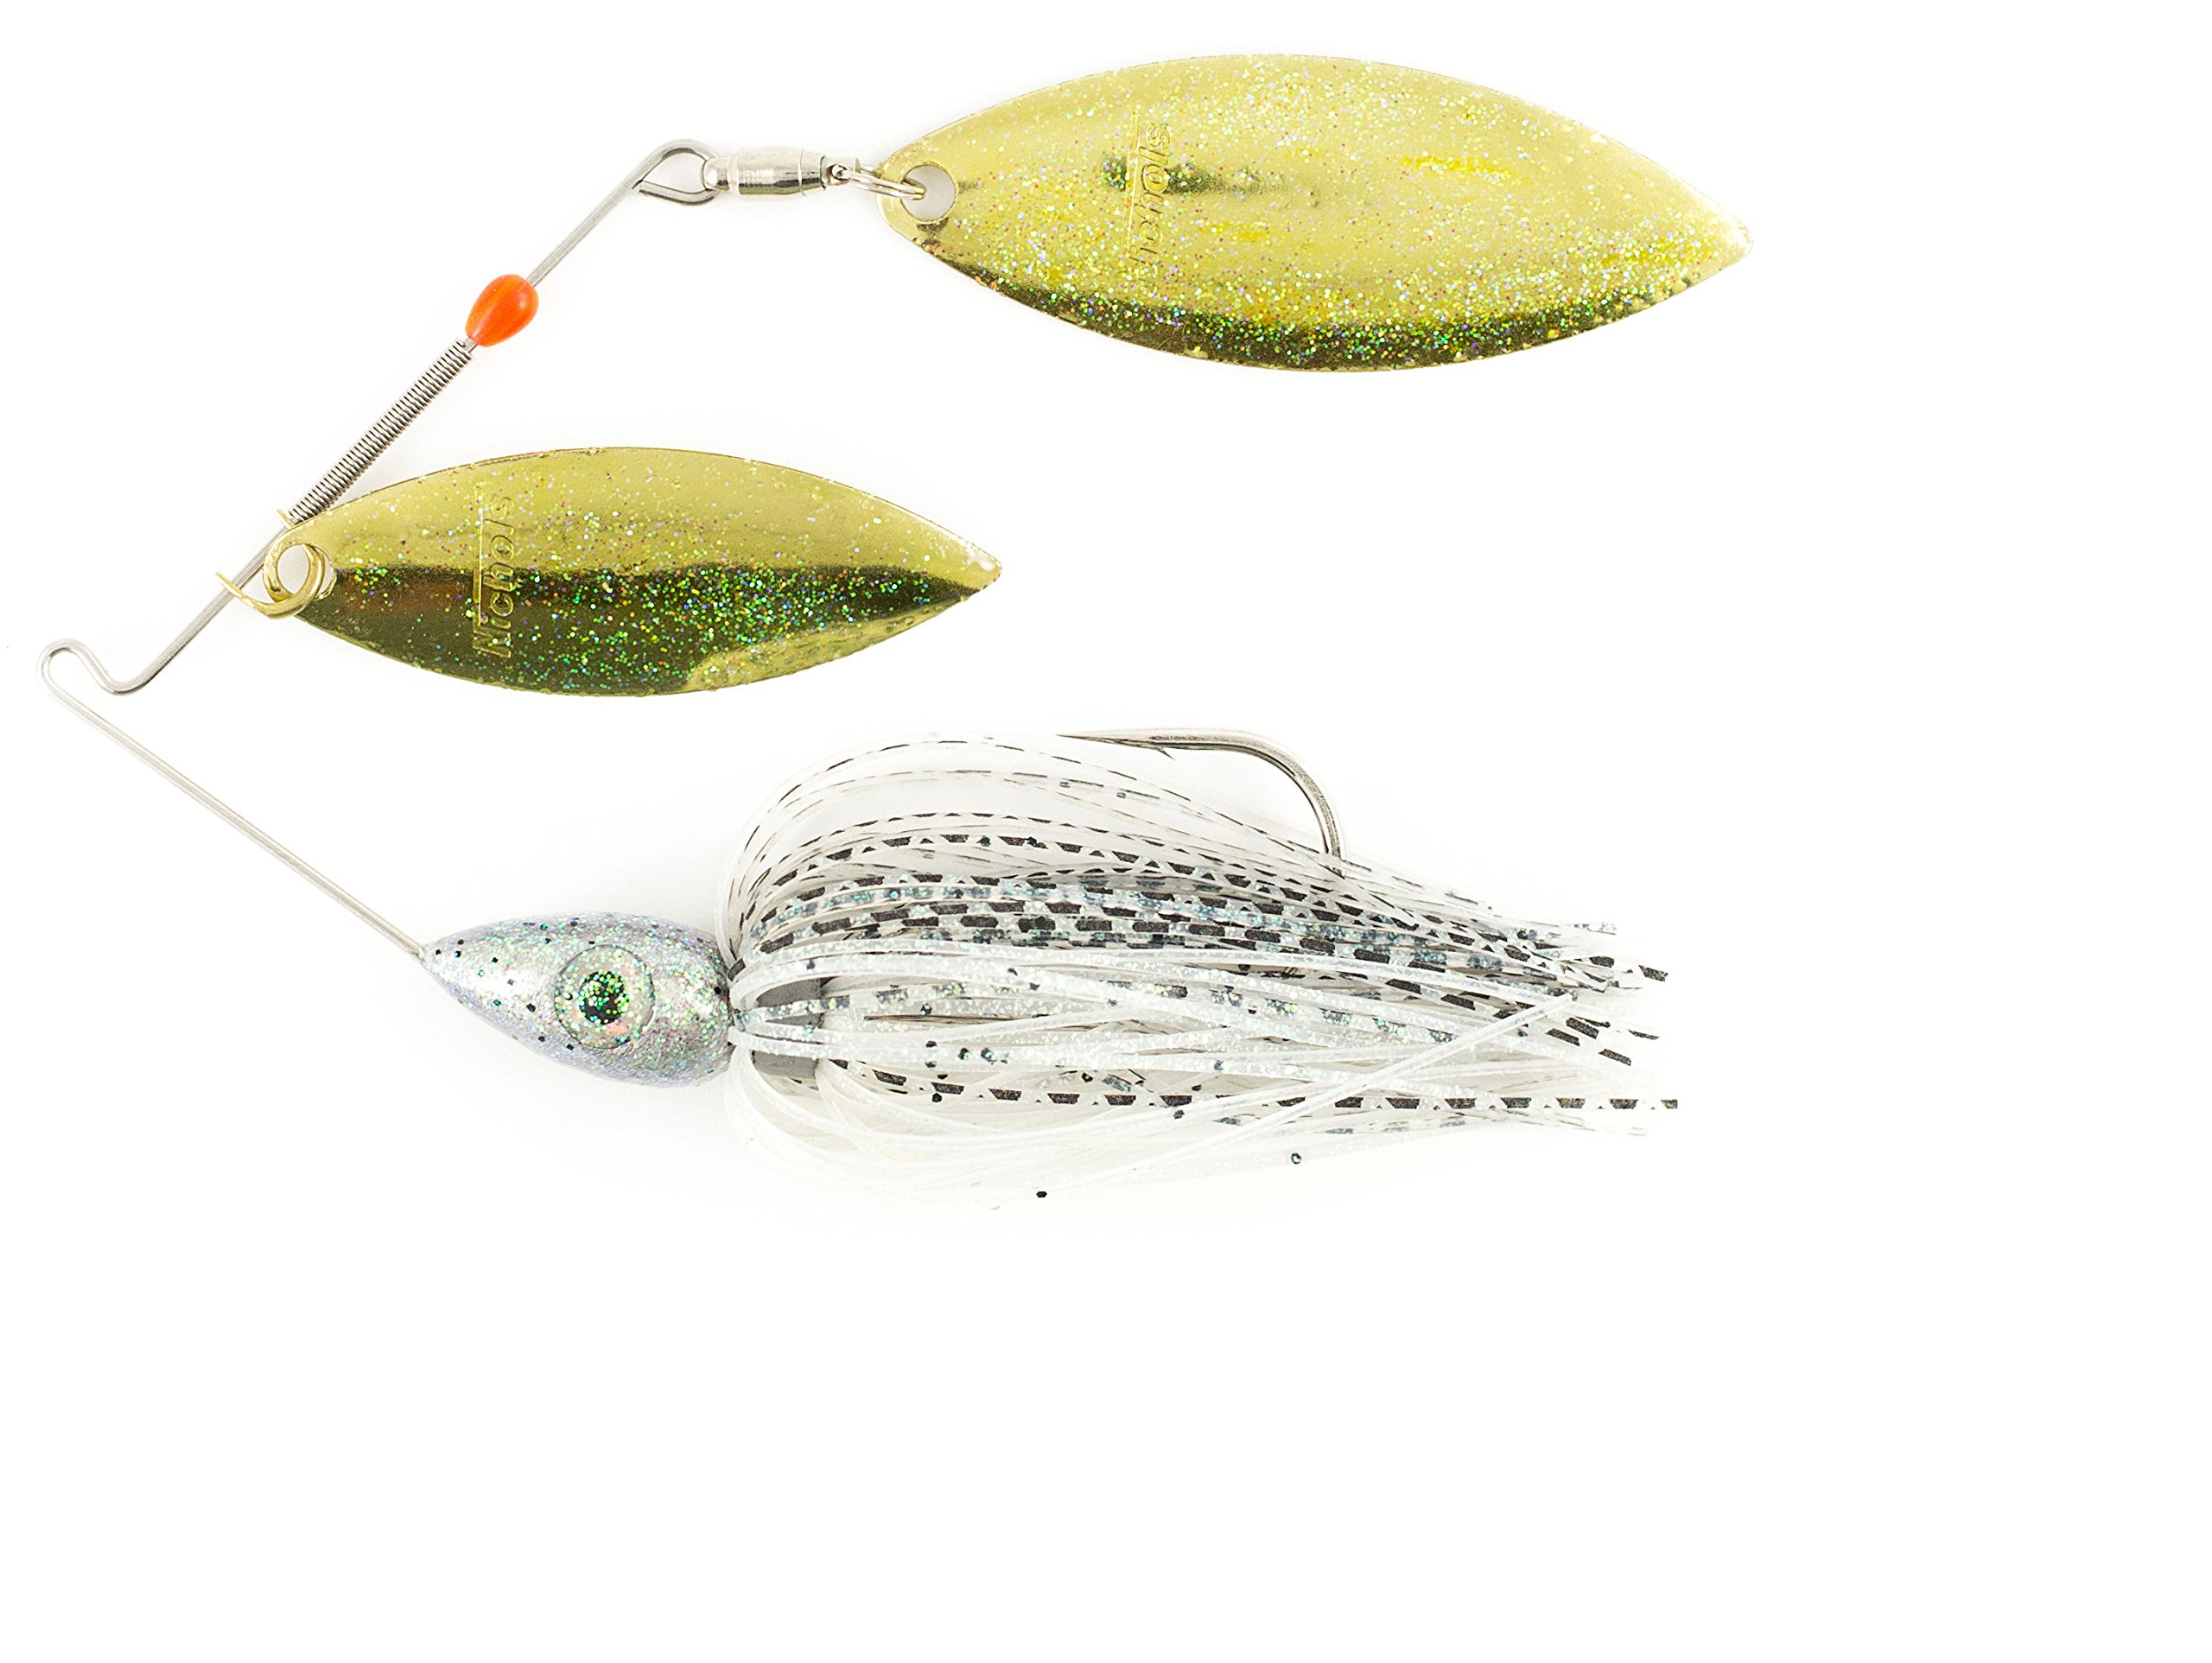 Nichols Lures Pulsator Metal Flake Double Willow Spinnerbait, Baby Bass, 1/2-Ounce by Nichols Lures